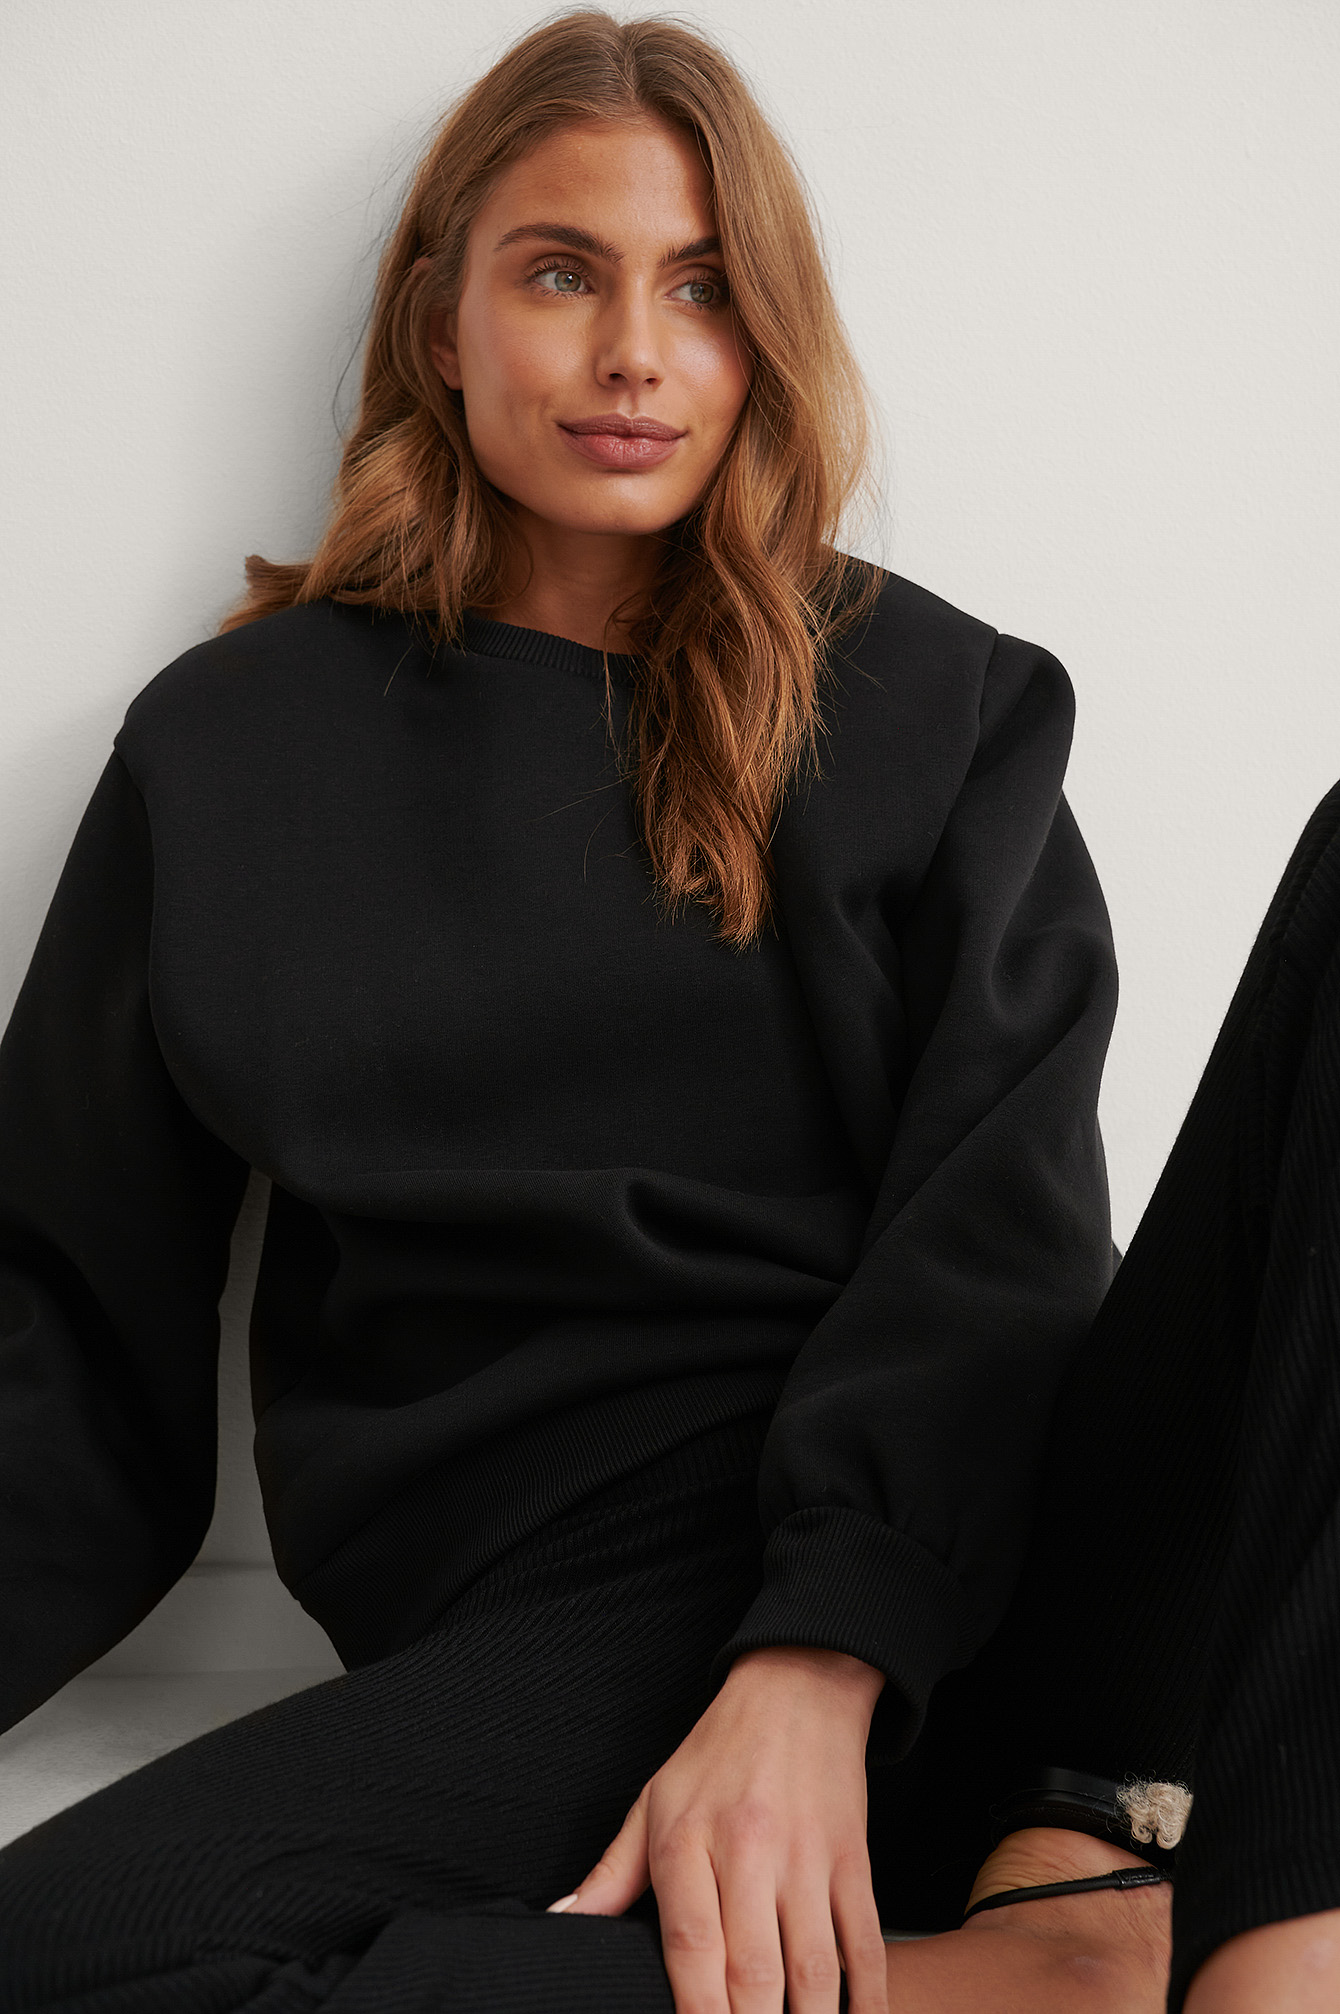 Black Organic Shoulder Pad Sweatshirt